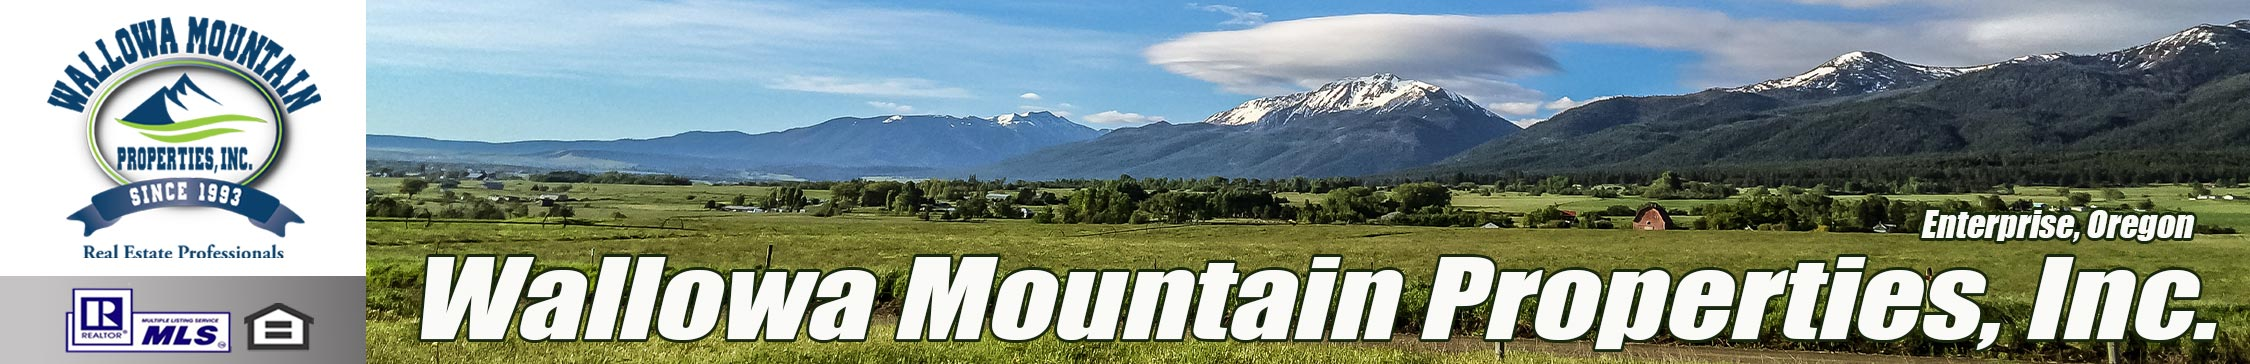 Wallowa Mountain Properties